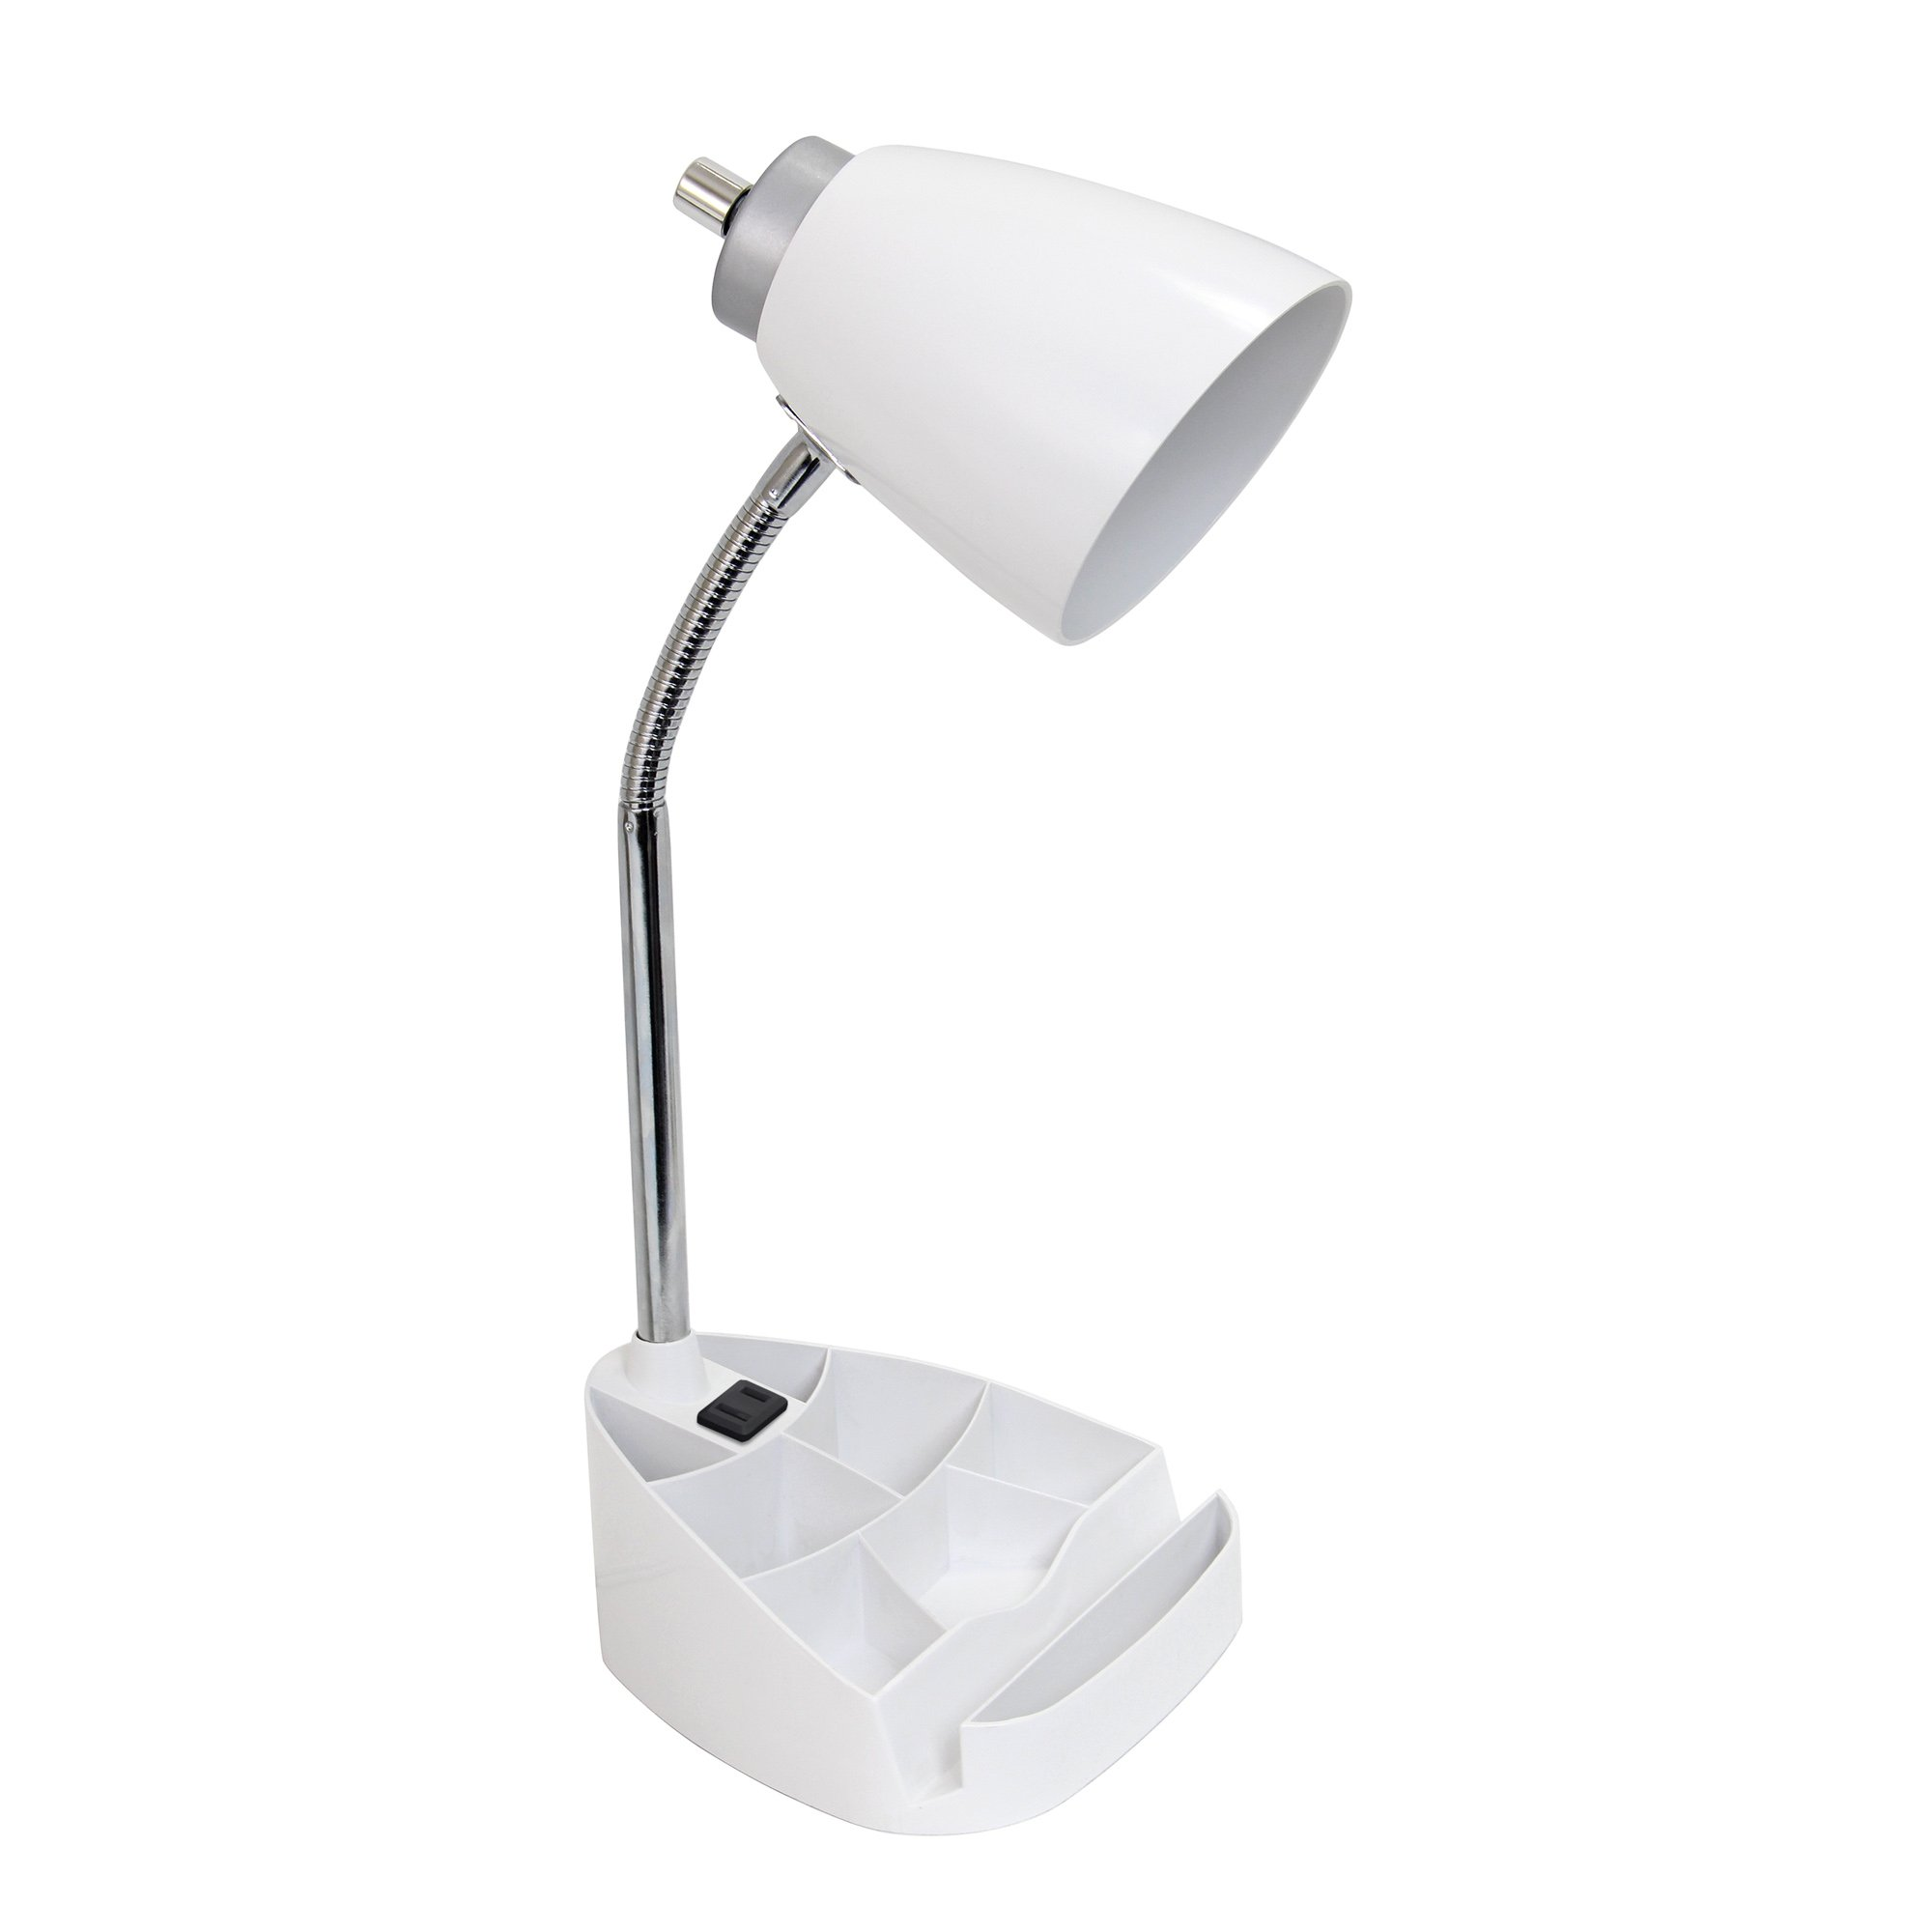 Limelights LD1057-WHT Gooseneck Organizer Desk Lamp with Ipad Tablet Stand Book Holder and Charging Outlet, White